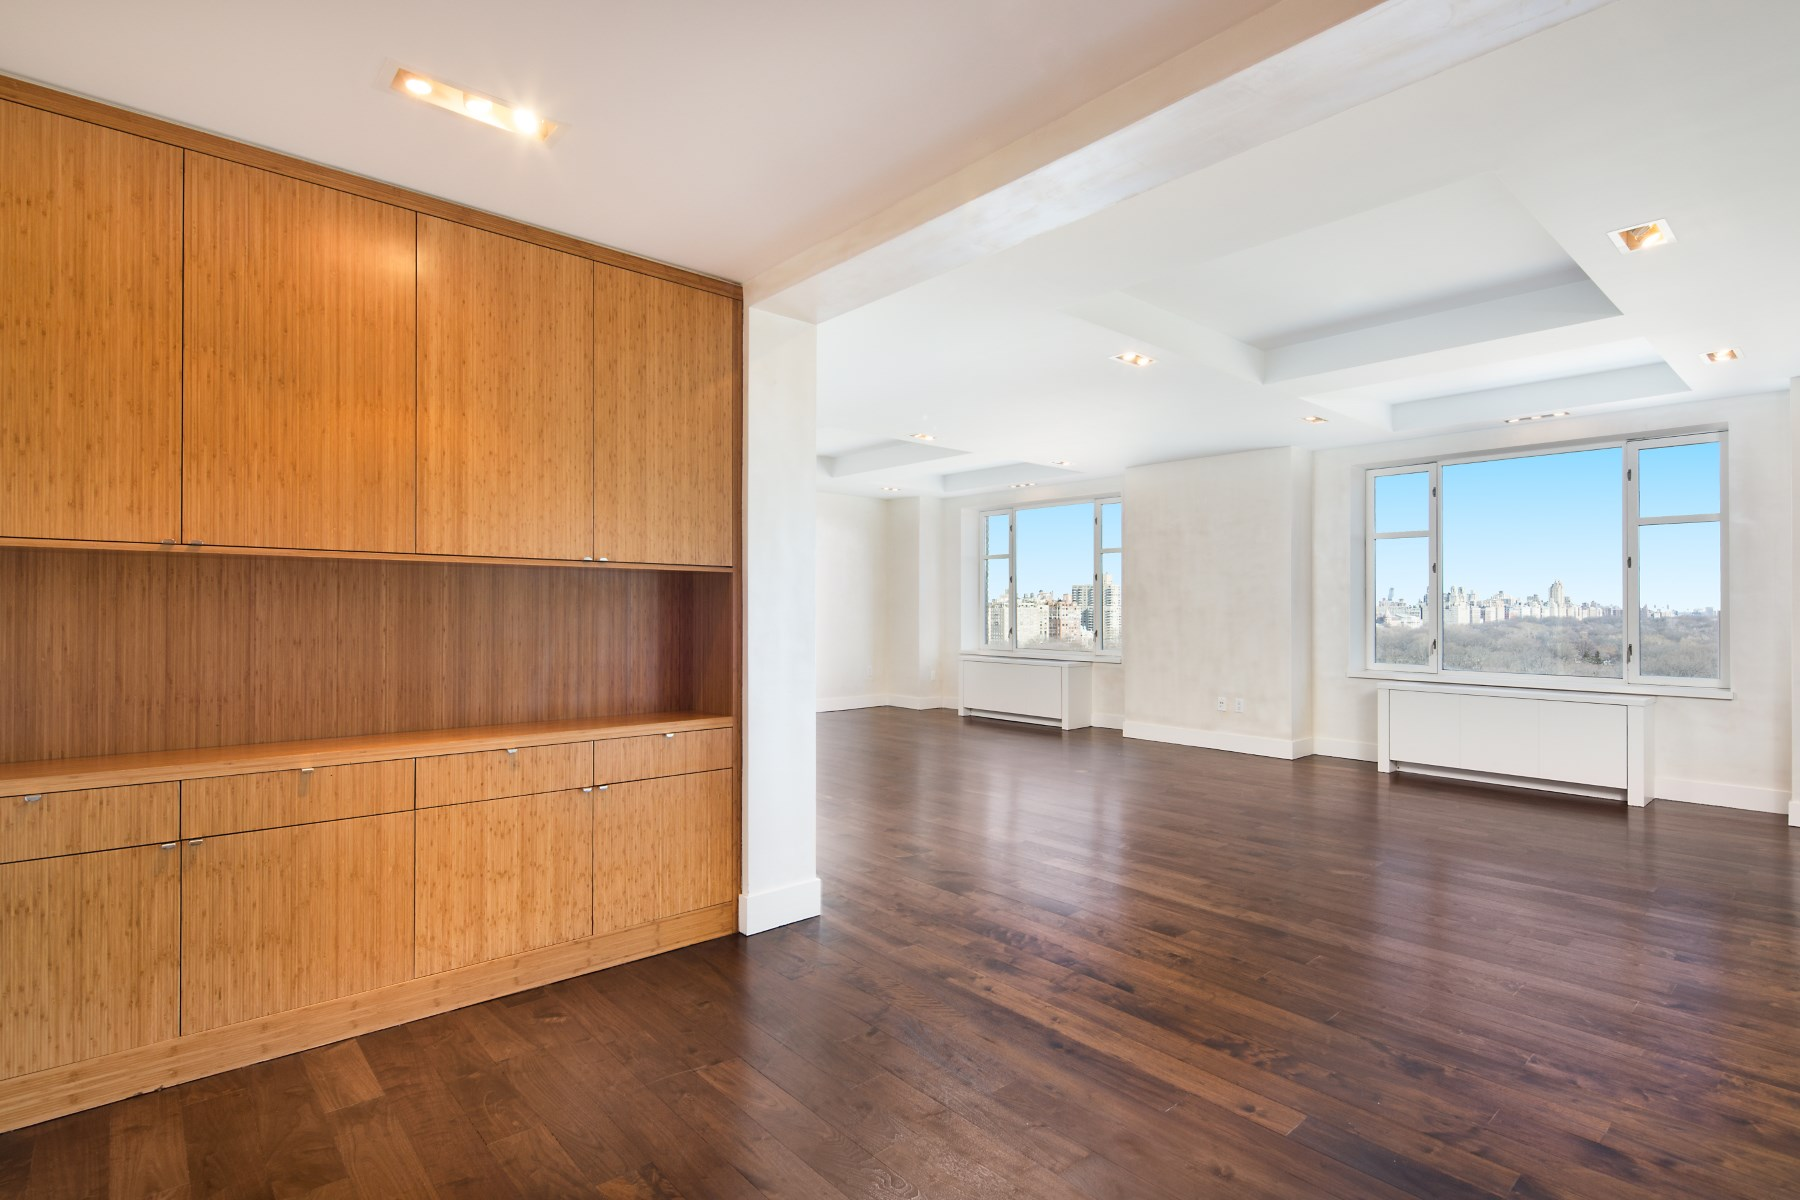 Apartment for Sale at 110 Central Park South, Apt. 18BC 110 Central Park South Apt 18BC New York, New York, 10019 United States